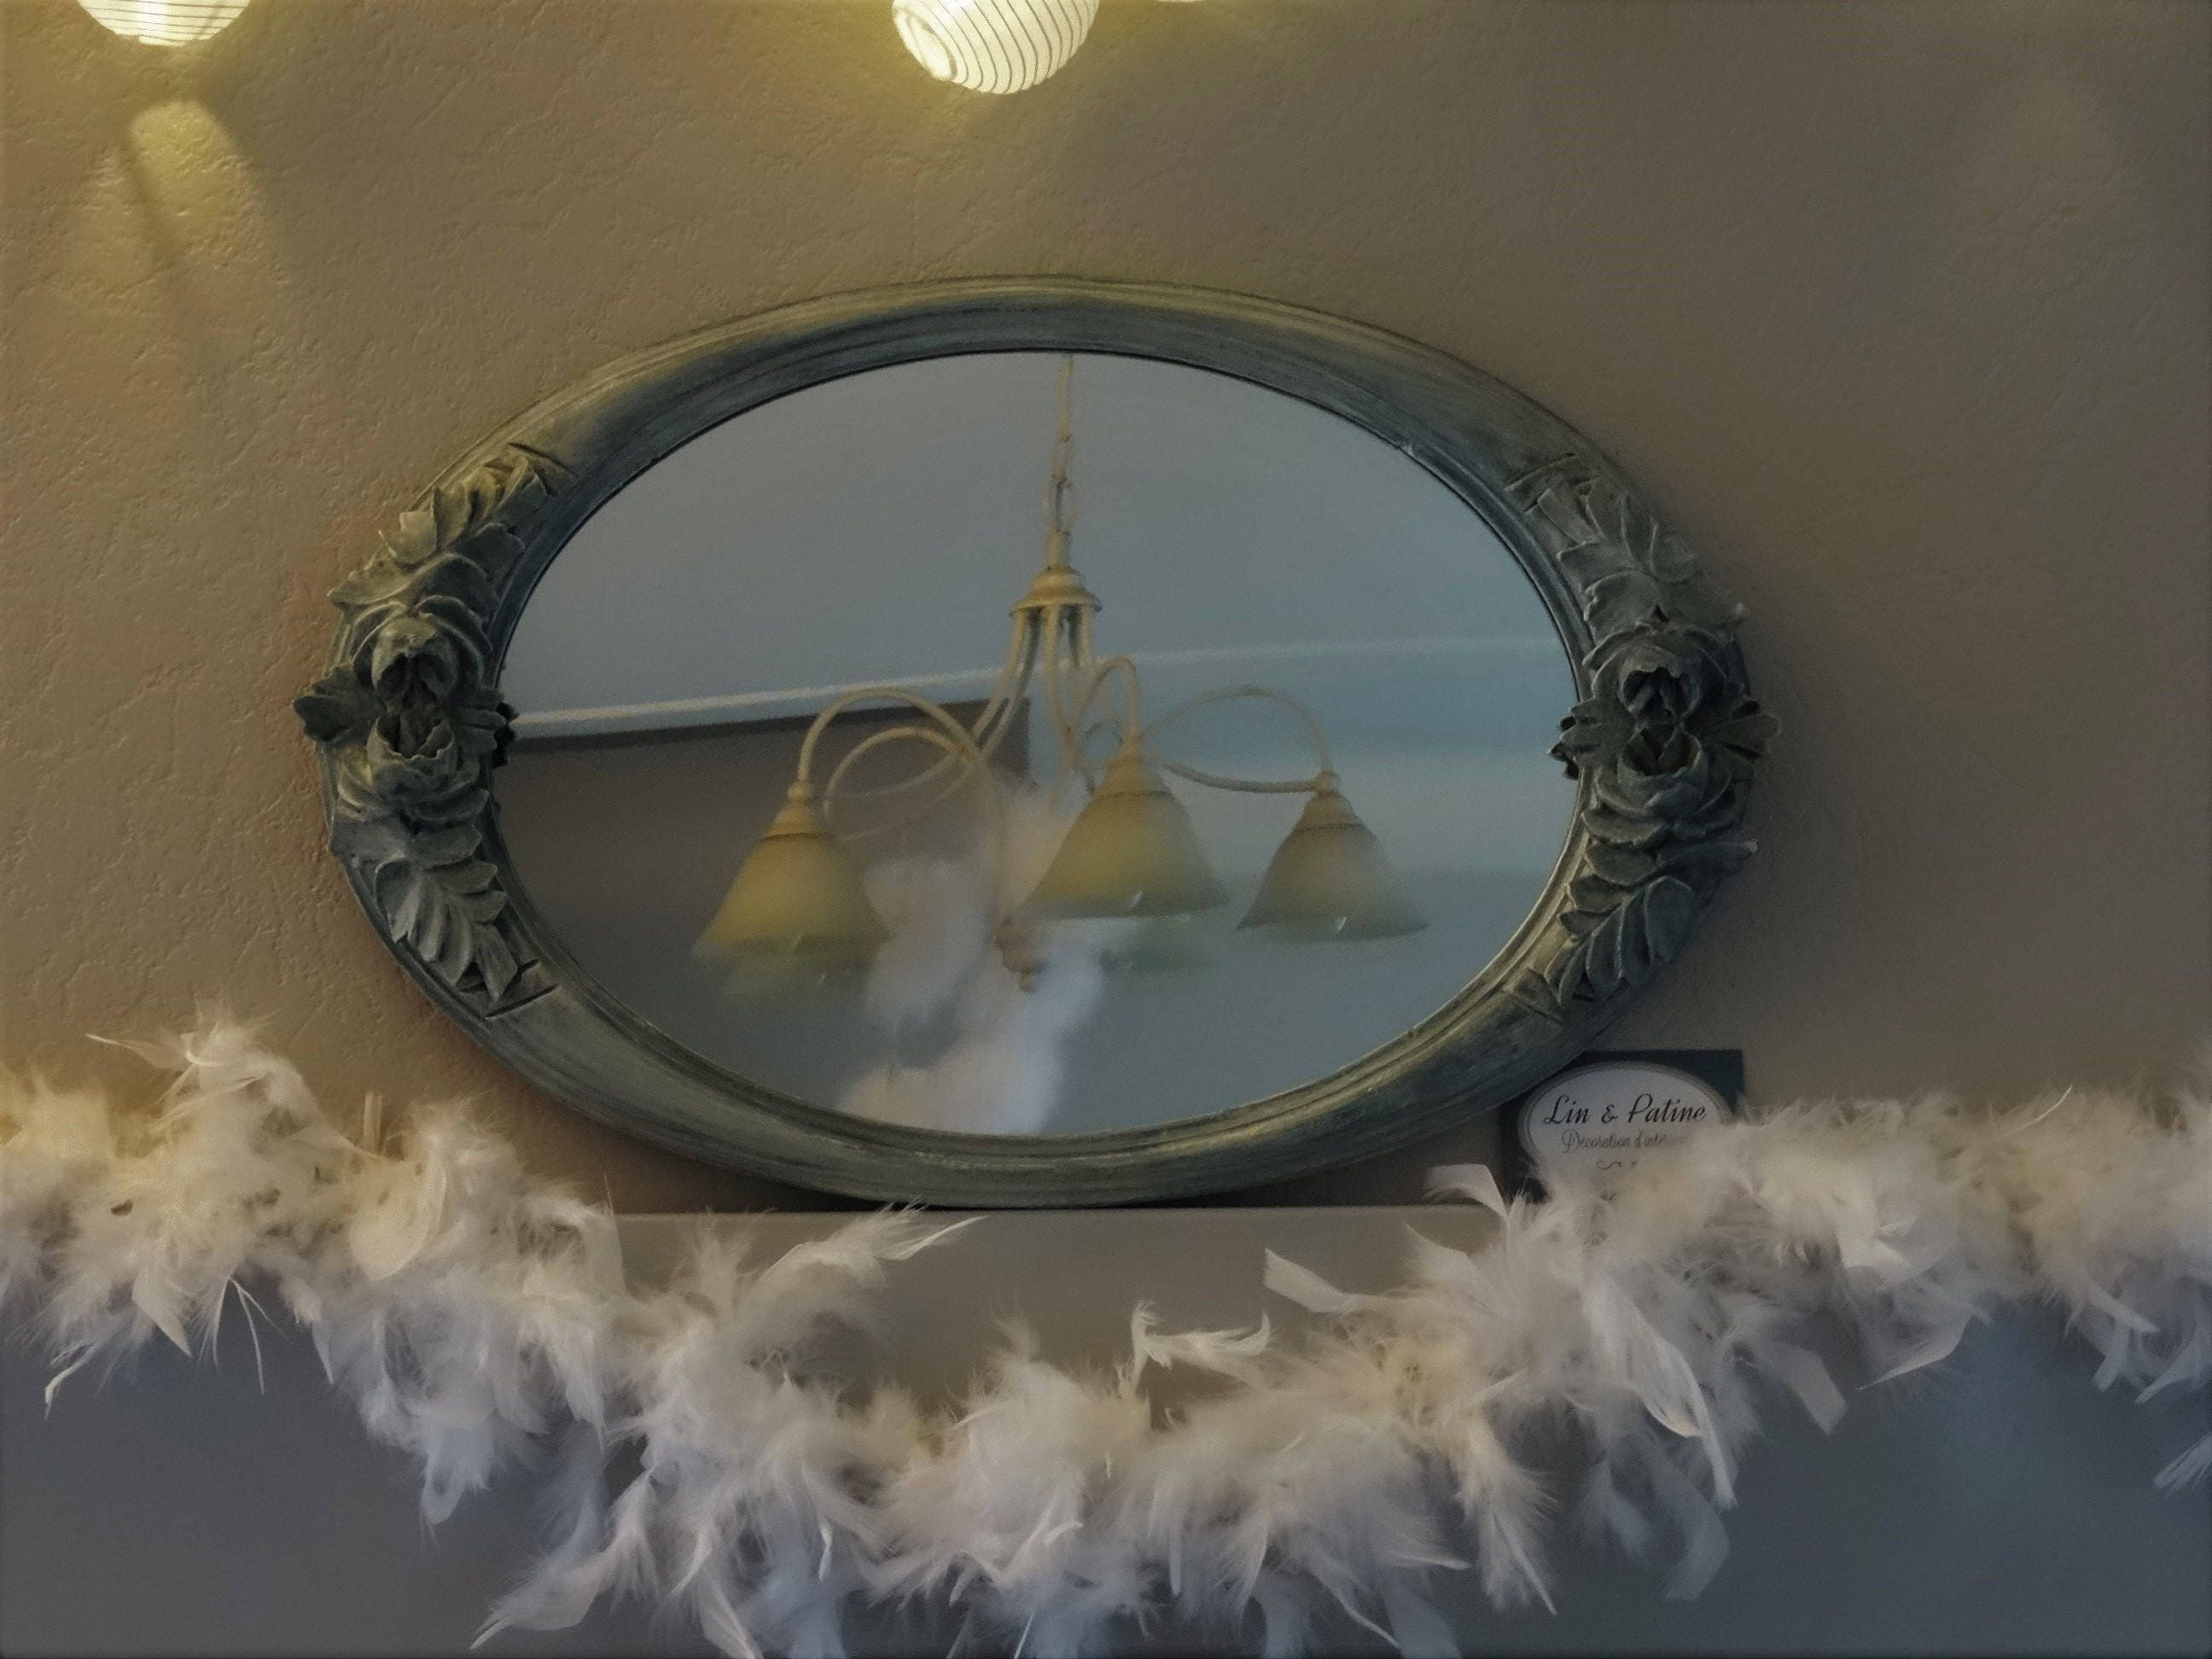 Décoratrice D Intérieur Rodez mirror inside art deco, decoration, home furnishing, reooke mirror and  weathered, oval carved frame with roses, shabby chic vintage decor